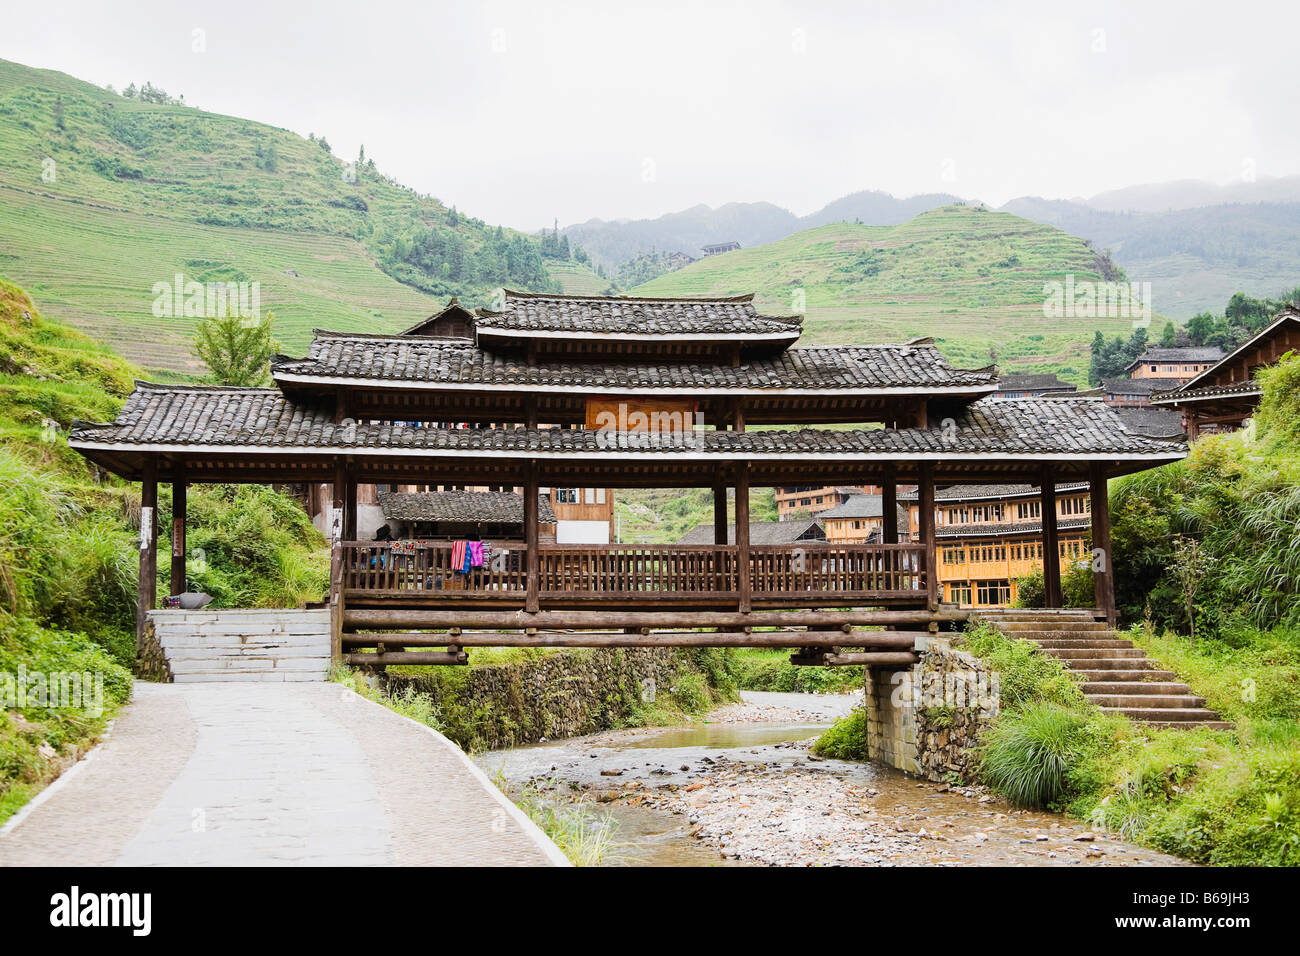 Houses in a village, Jinkeng Terraced Field, Guangxi Province, China - Stock Image